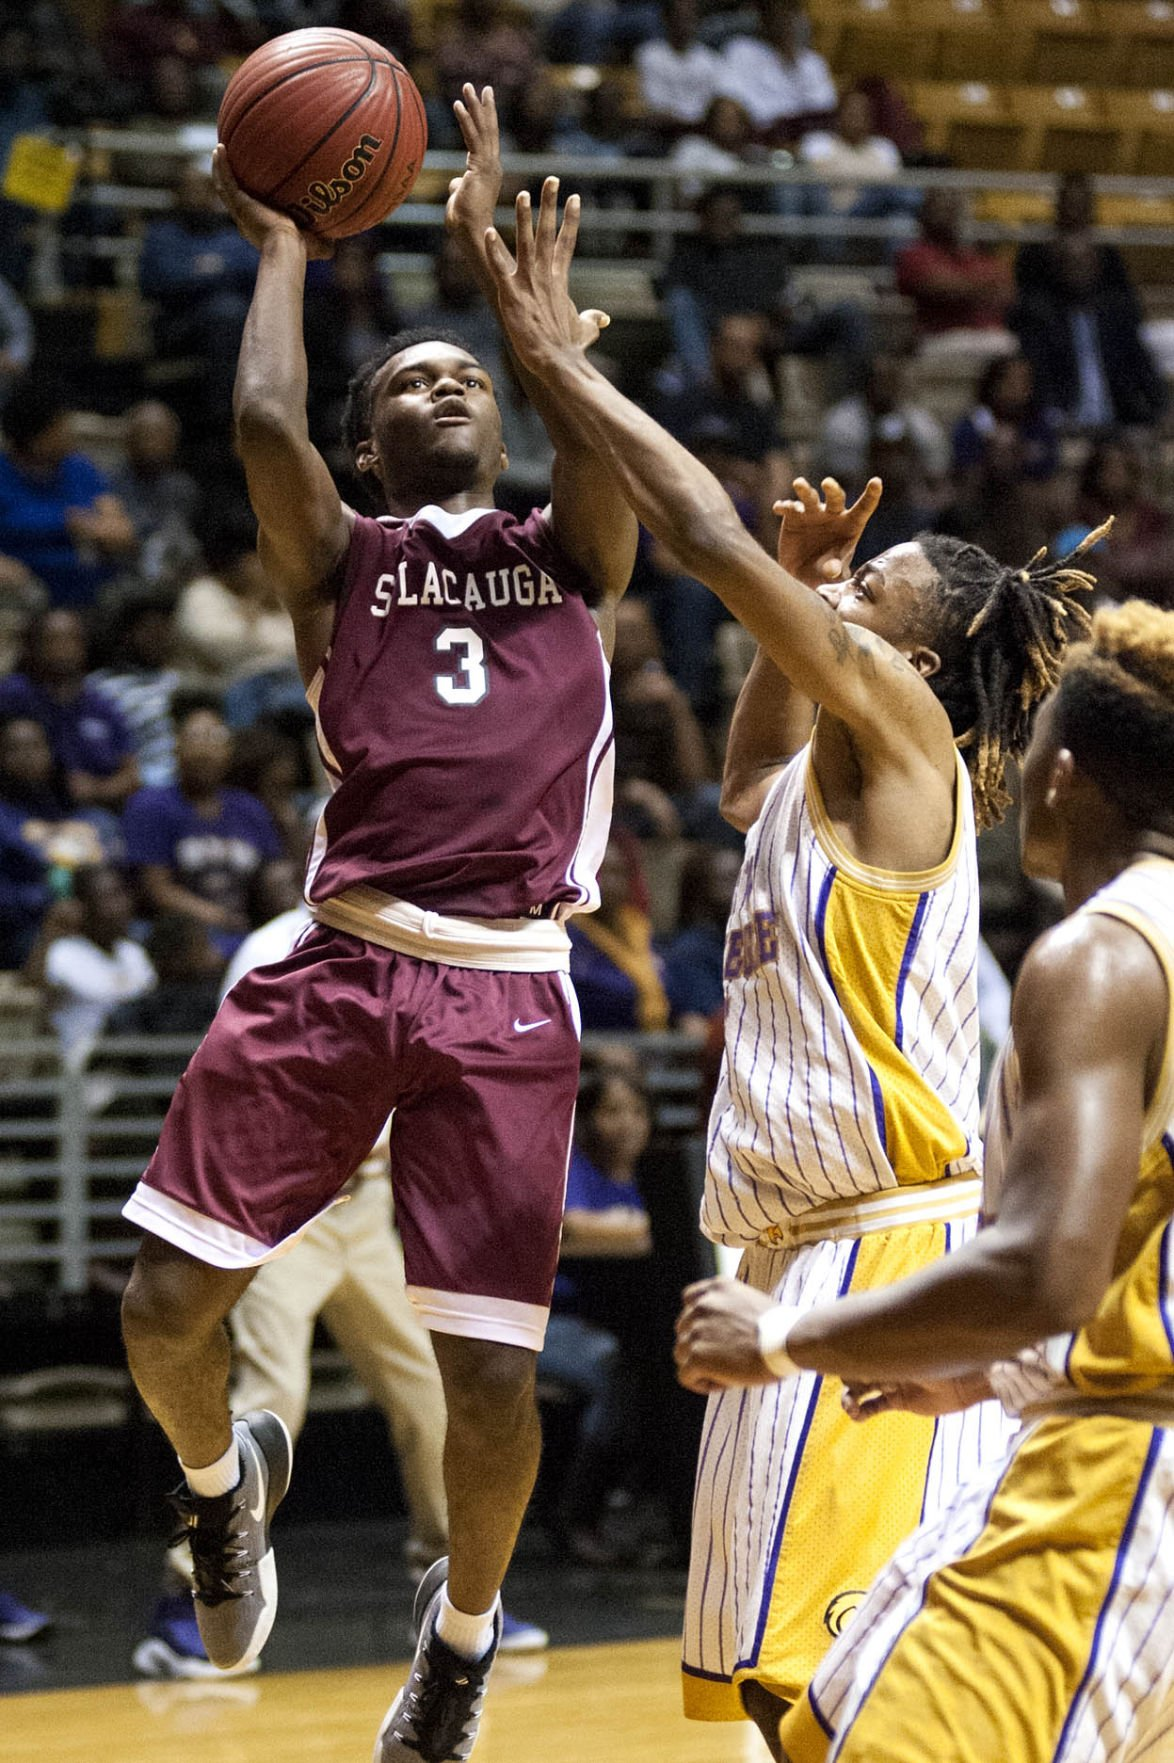 Sylacauga boys used 2nd-quarter surge to pull away en route to region title, Final Four berth